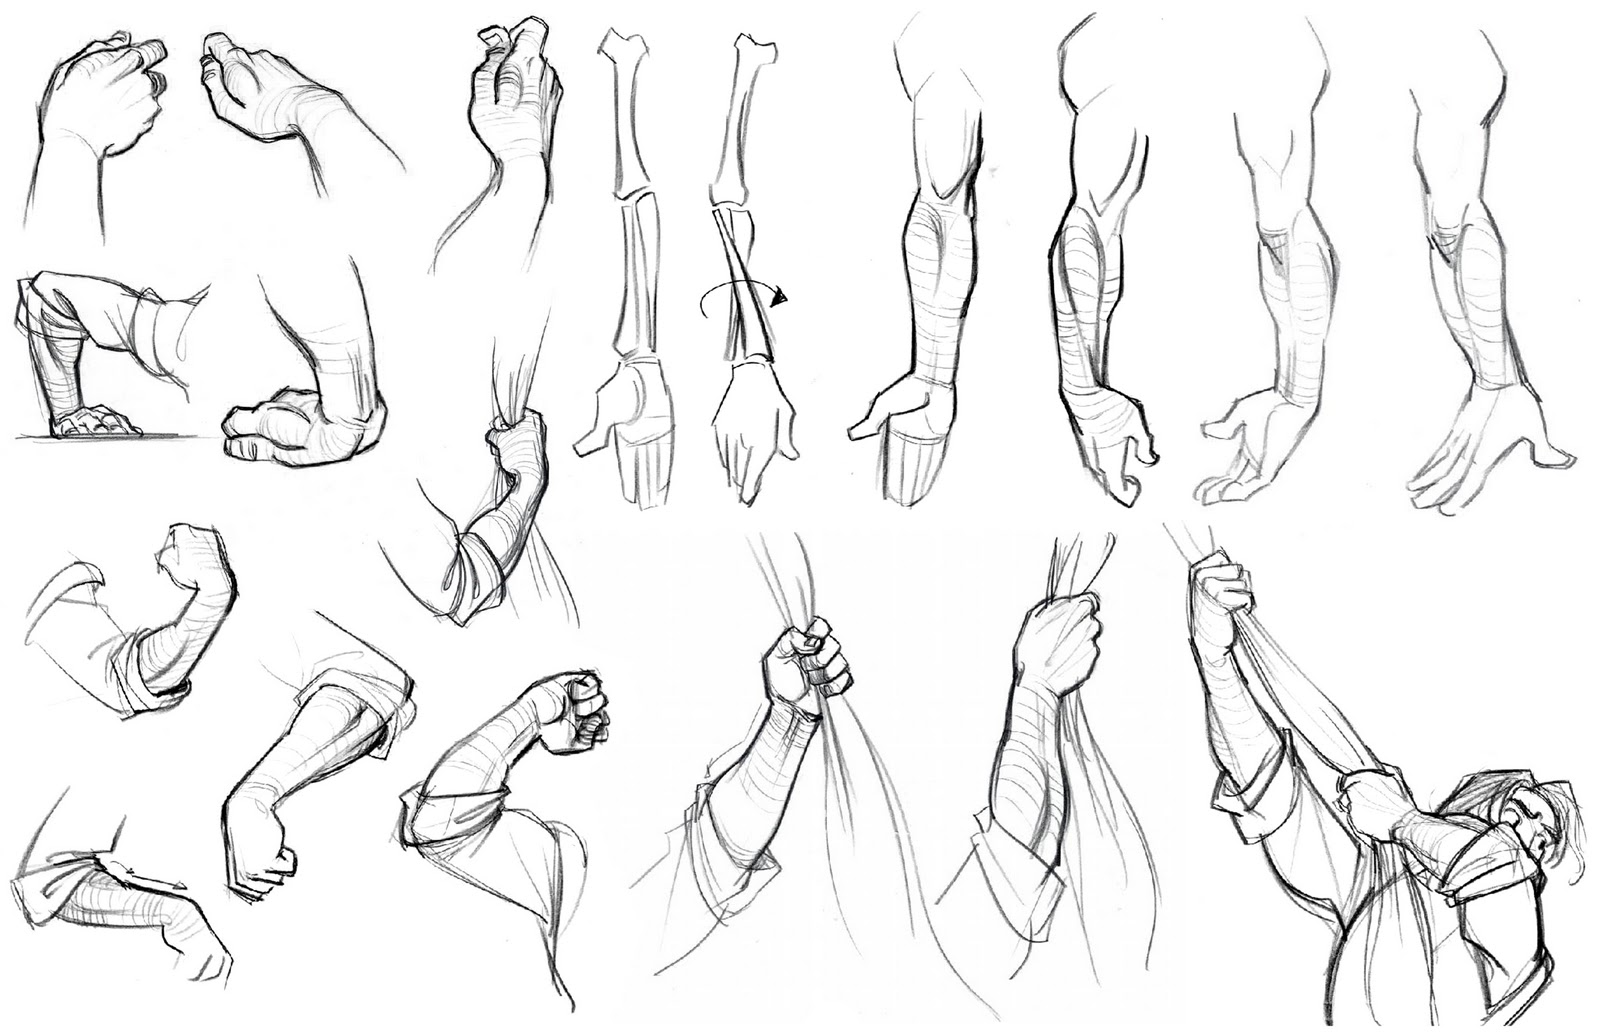 Human Body Structure Drawing at GetDrawings.com | Free for personal ...